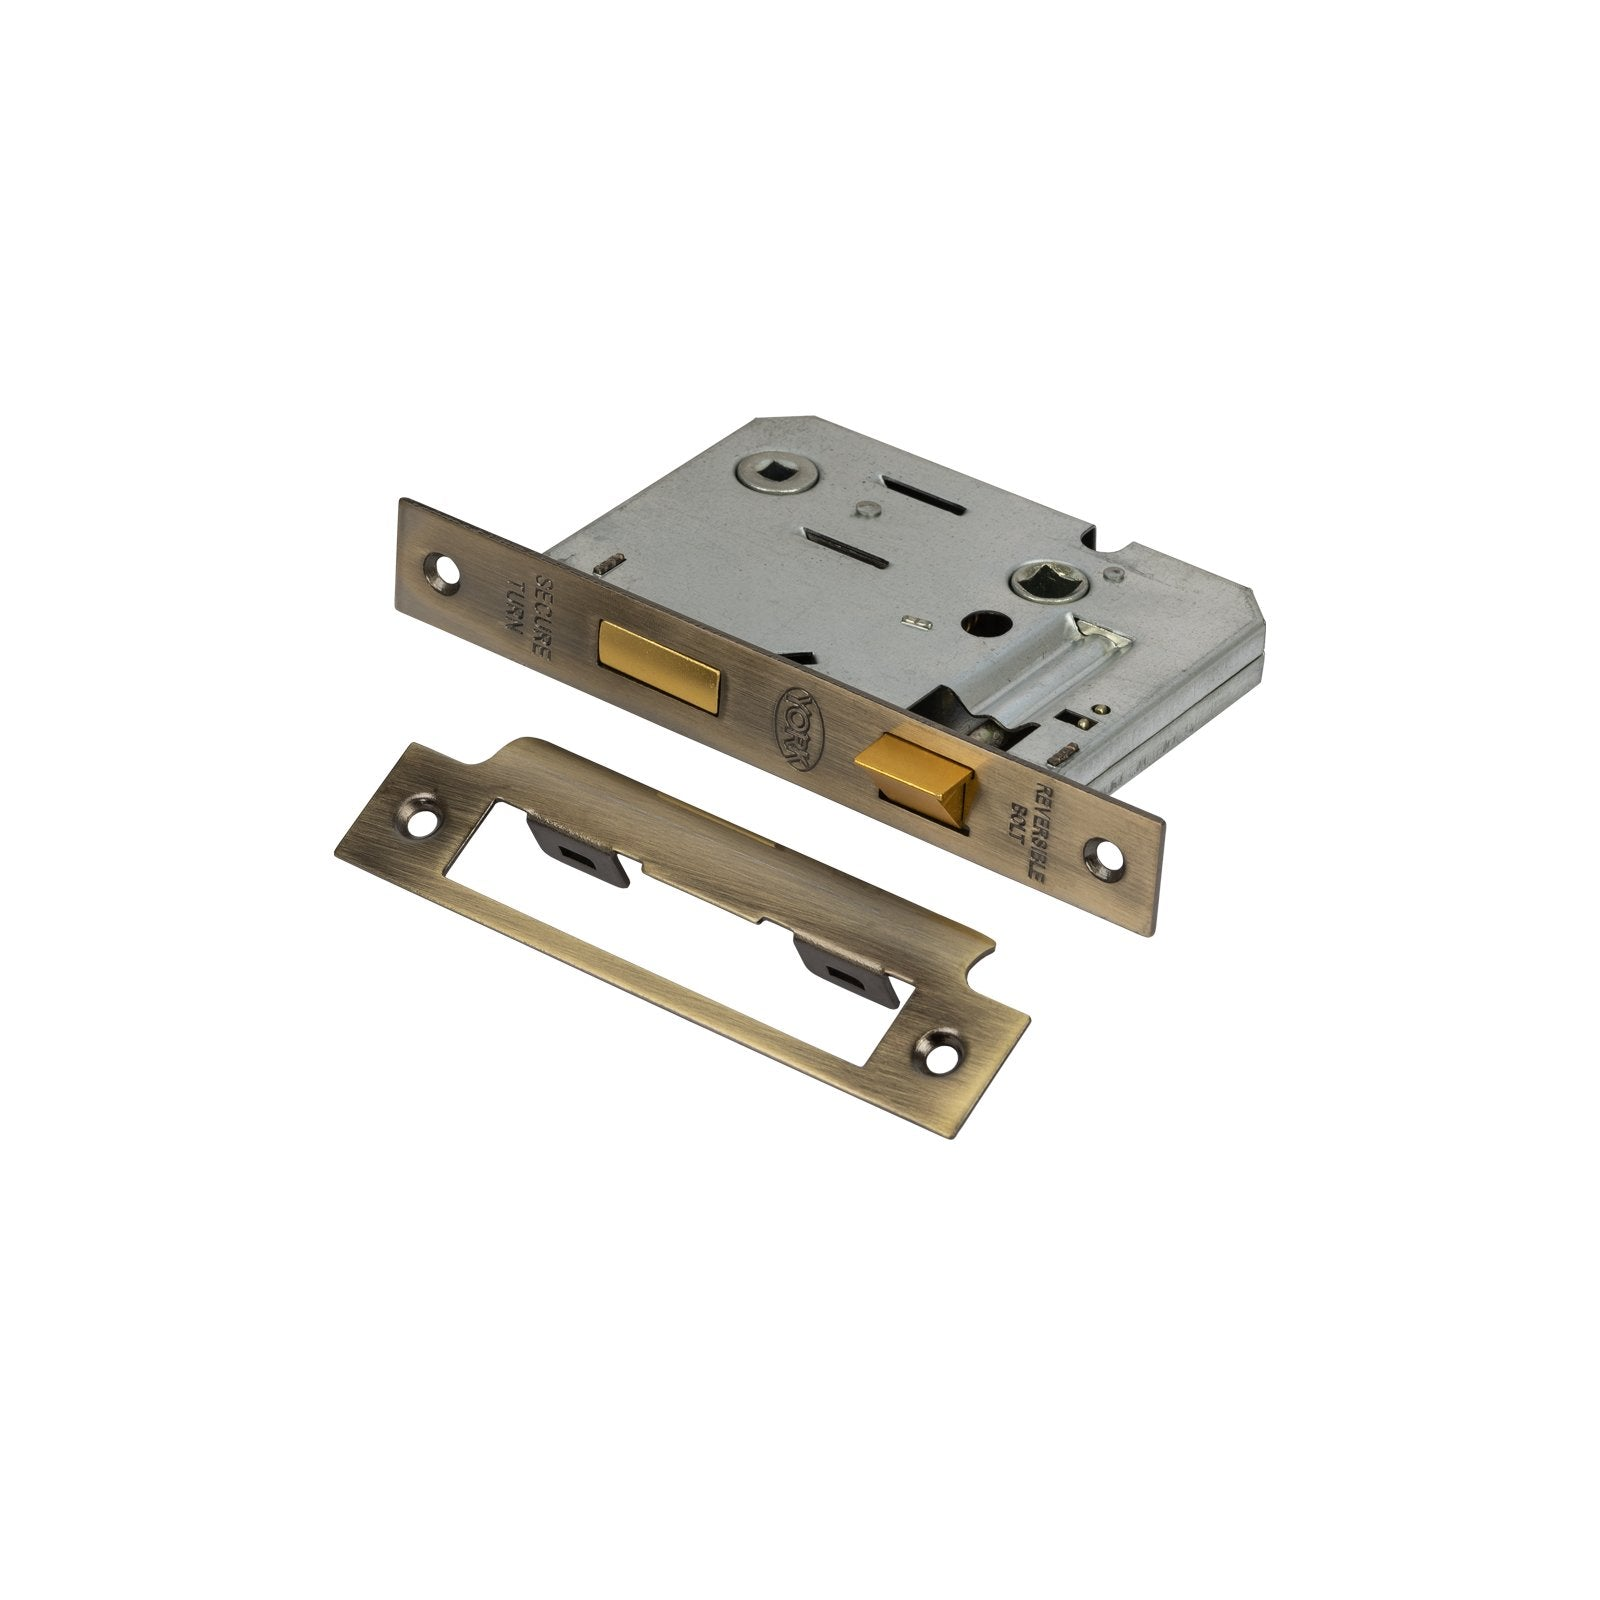 locks and latches, locks & latches, interior door latch, Mortice Locks and Tubular Latches